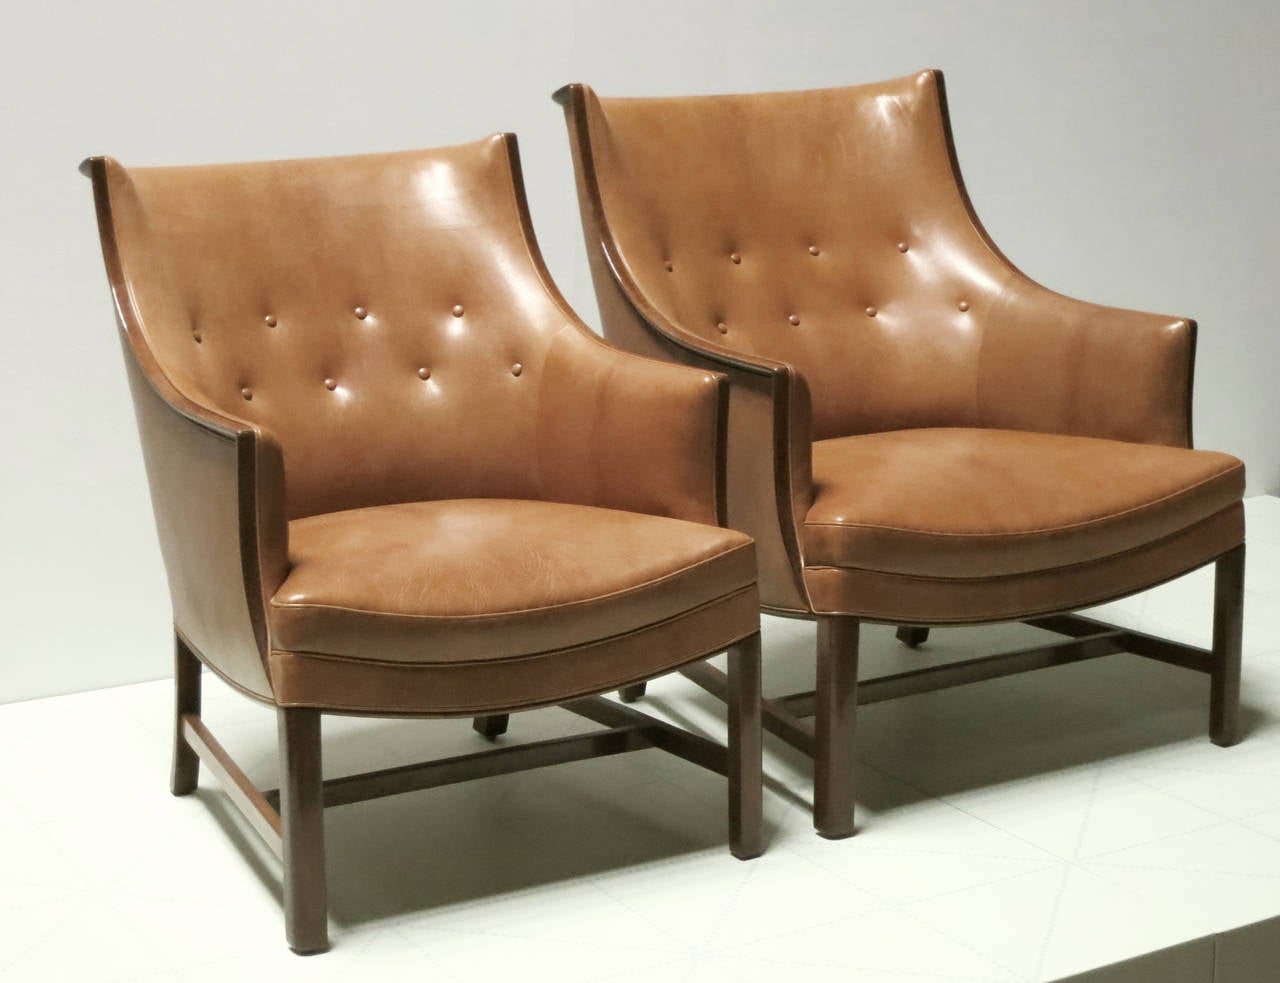 Danish Pair of Refined 1930s Easy Chairs by Frits Henningsen For Sale